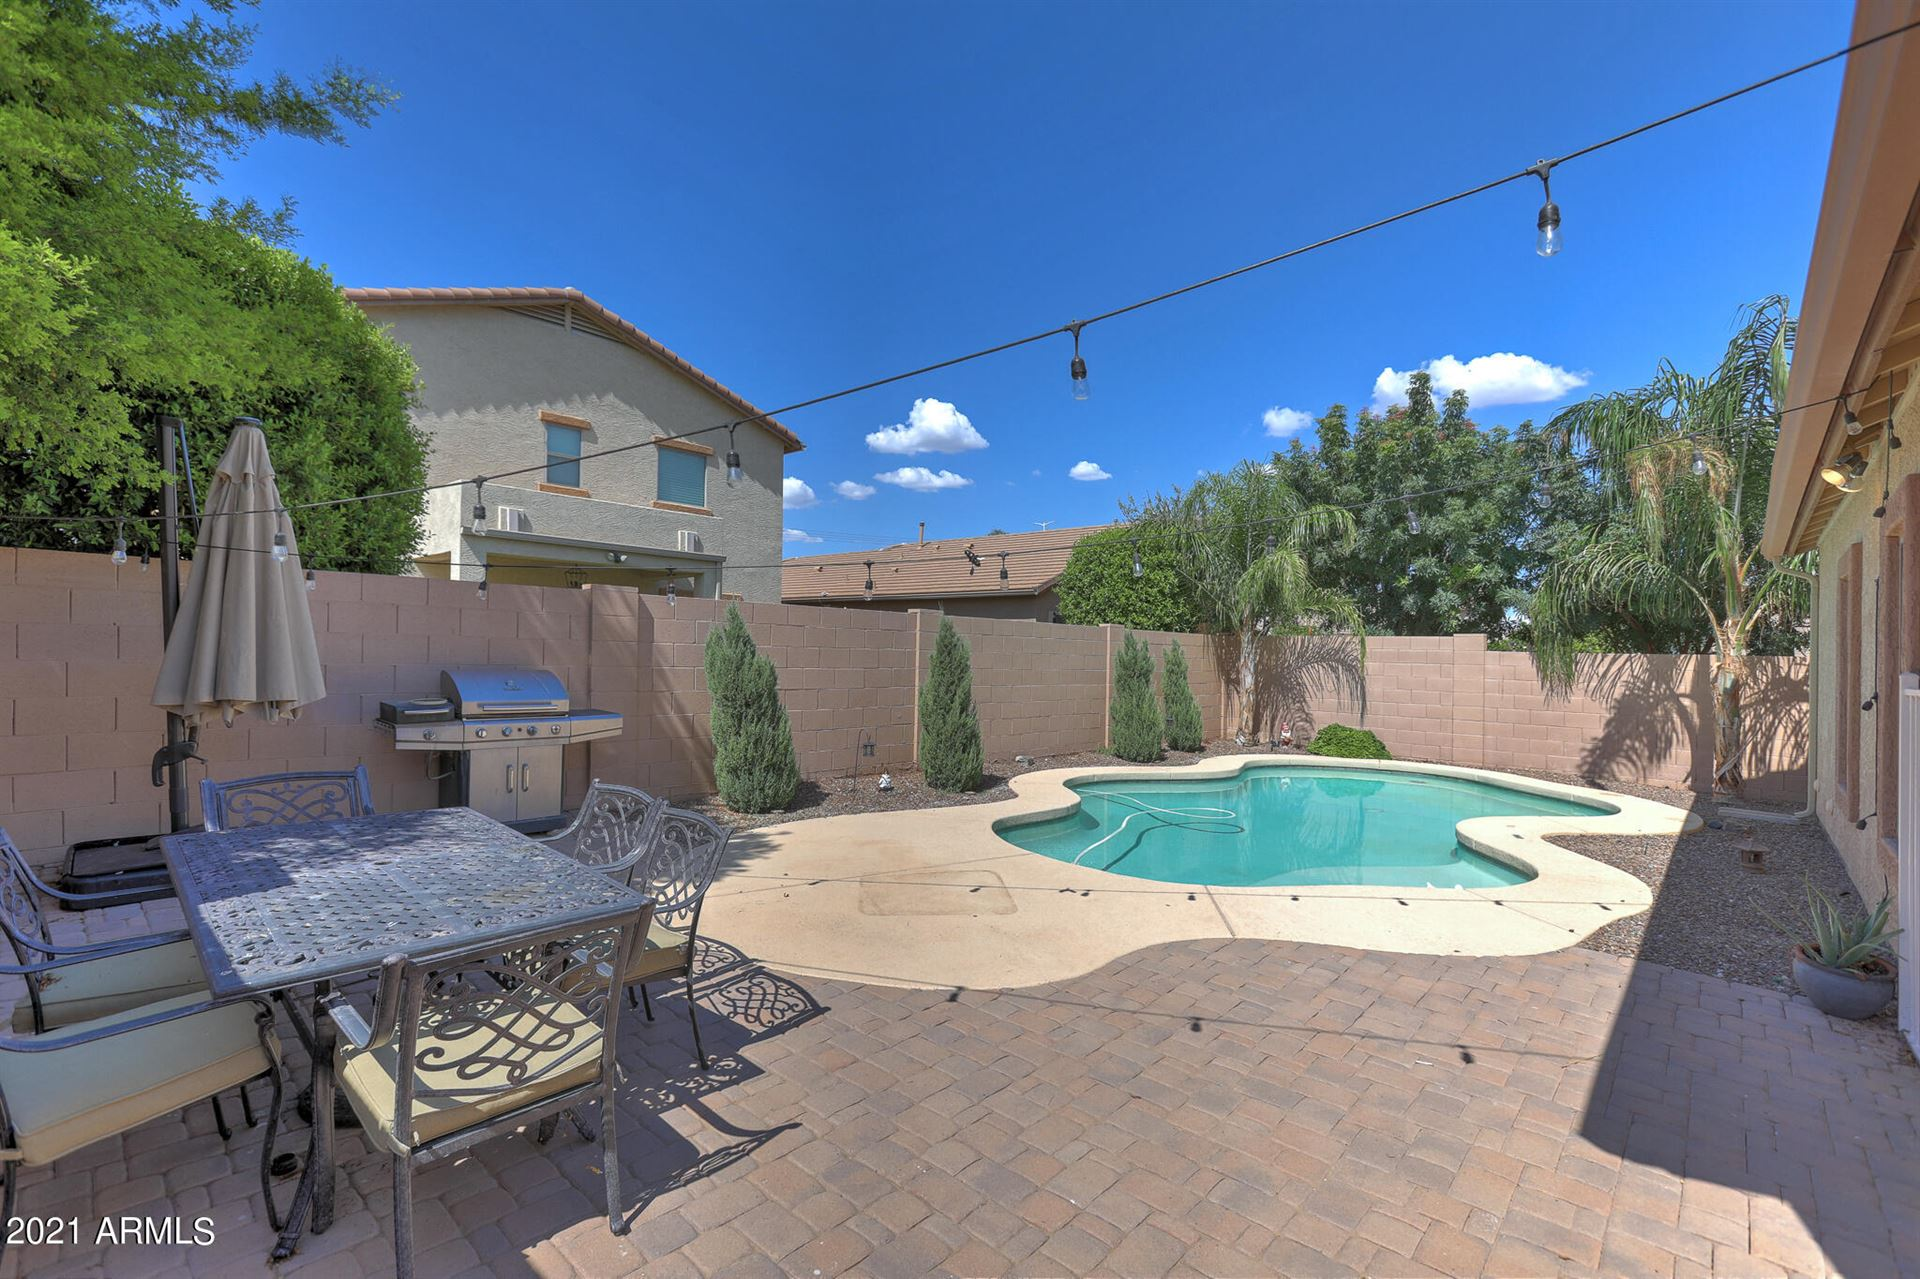 Photo of 10138 W PARKWAY Drive, Tolleson, AZ 85353 (MLS # 6272483)